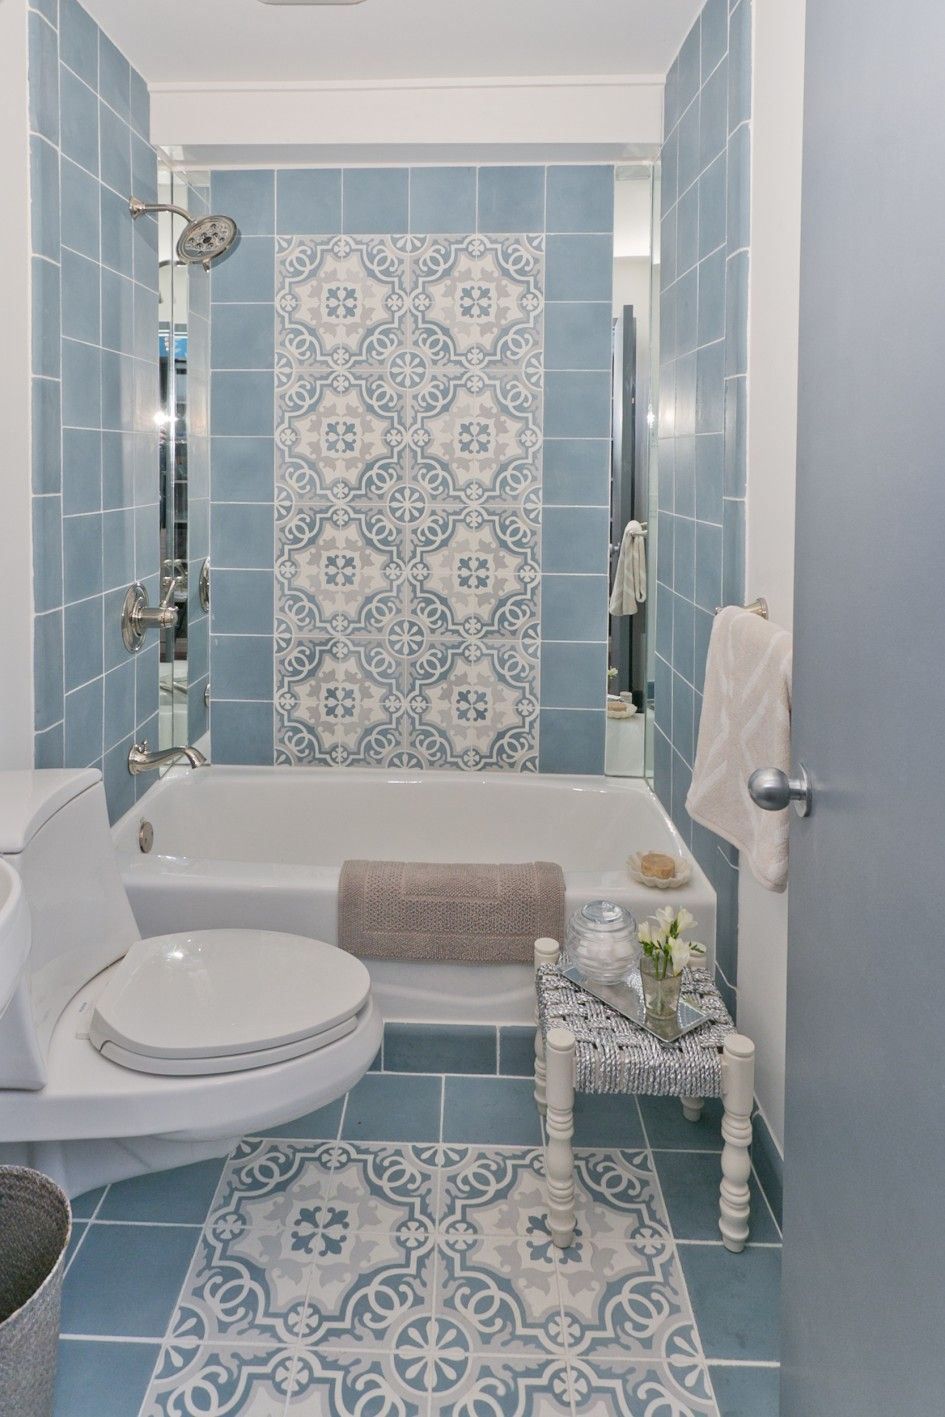 Breathtaking Blue Bathroom Tile Design Ideas 48 New Ideas Download